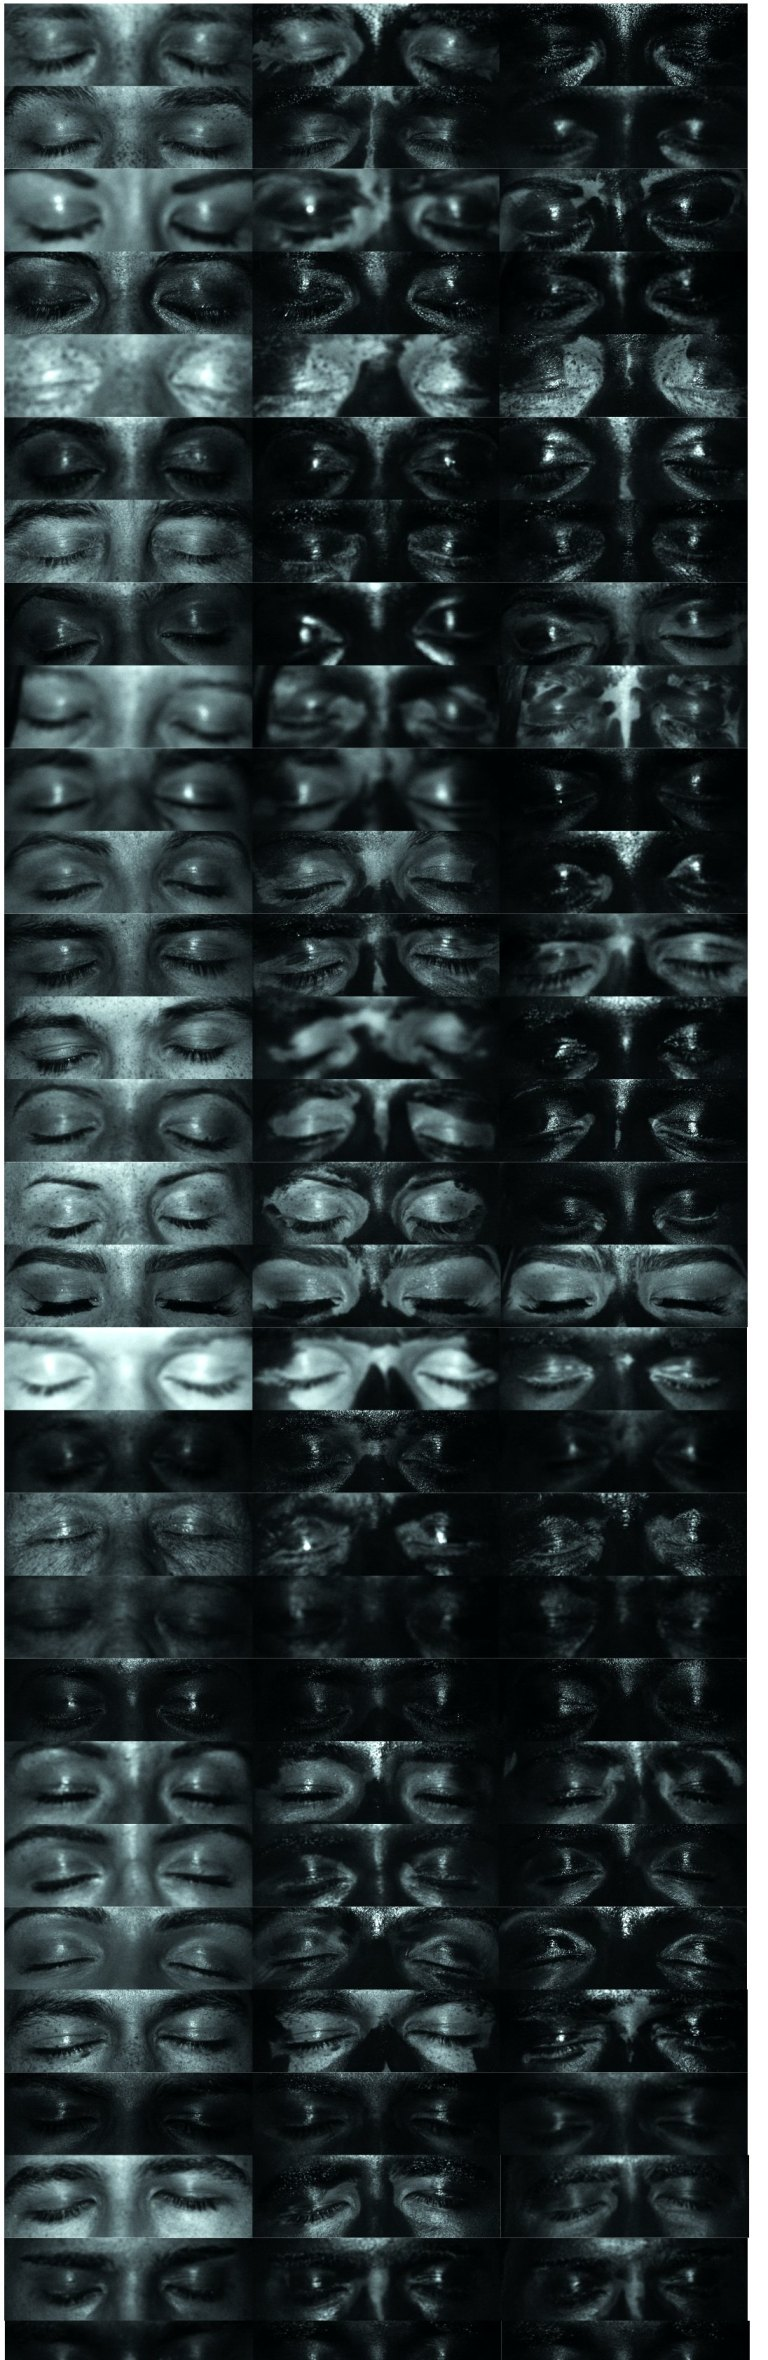 A panel of UV images of eyelid regions, before (left) or after sunscreen application (middle). Right hand column is the same person who has applied sunscreen after receiving public health information